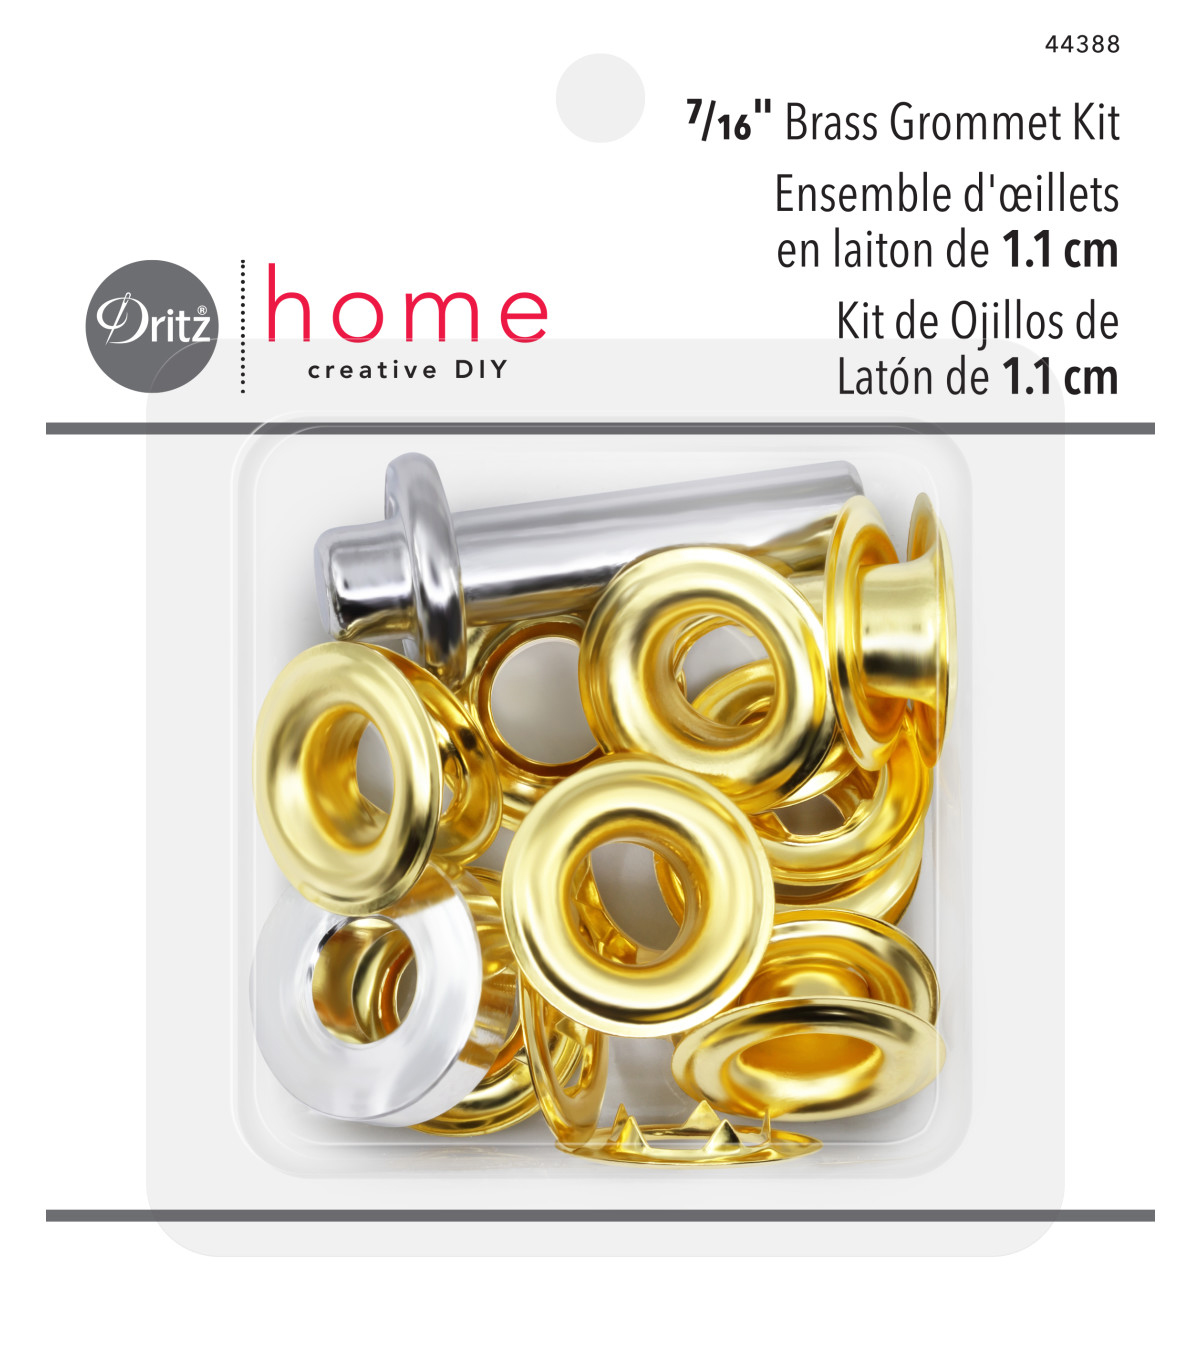 Dritz 0.39\u0022 Home Grommet Kit